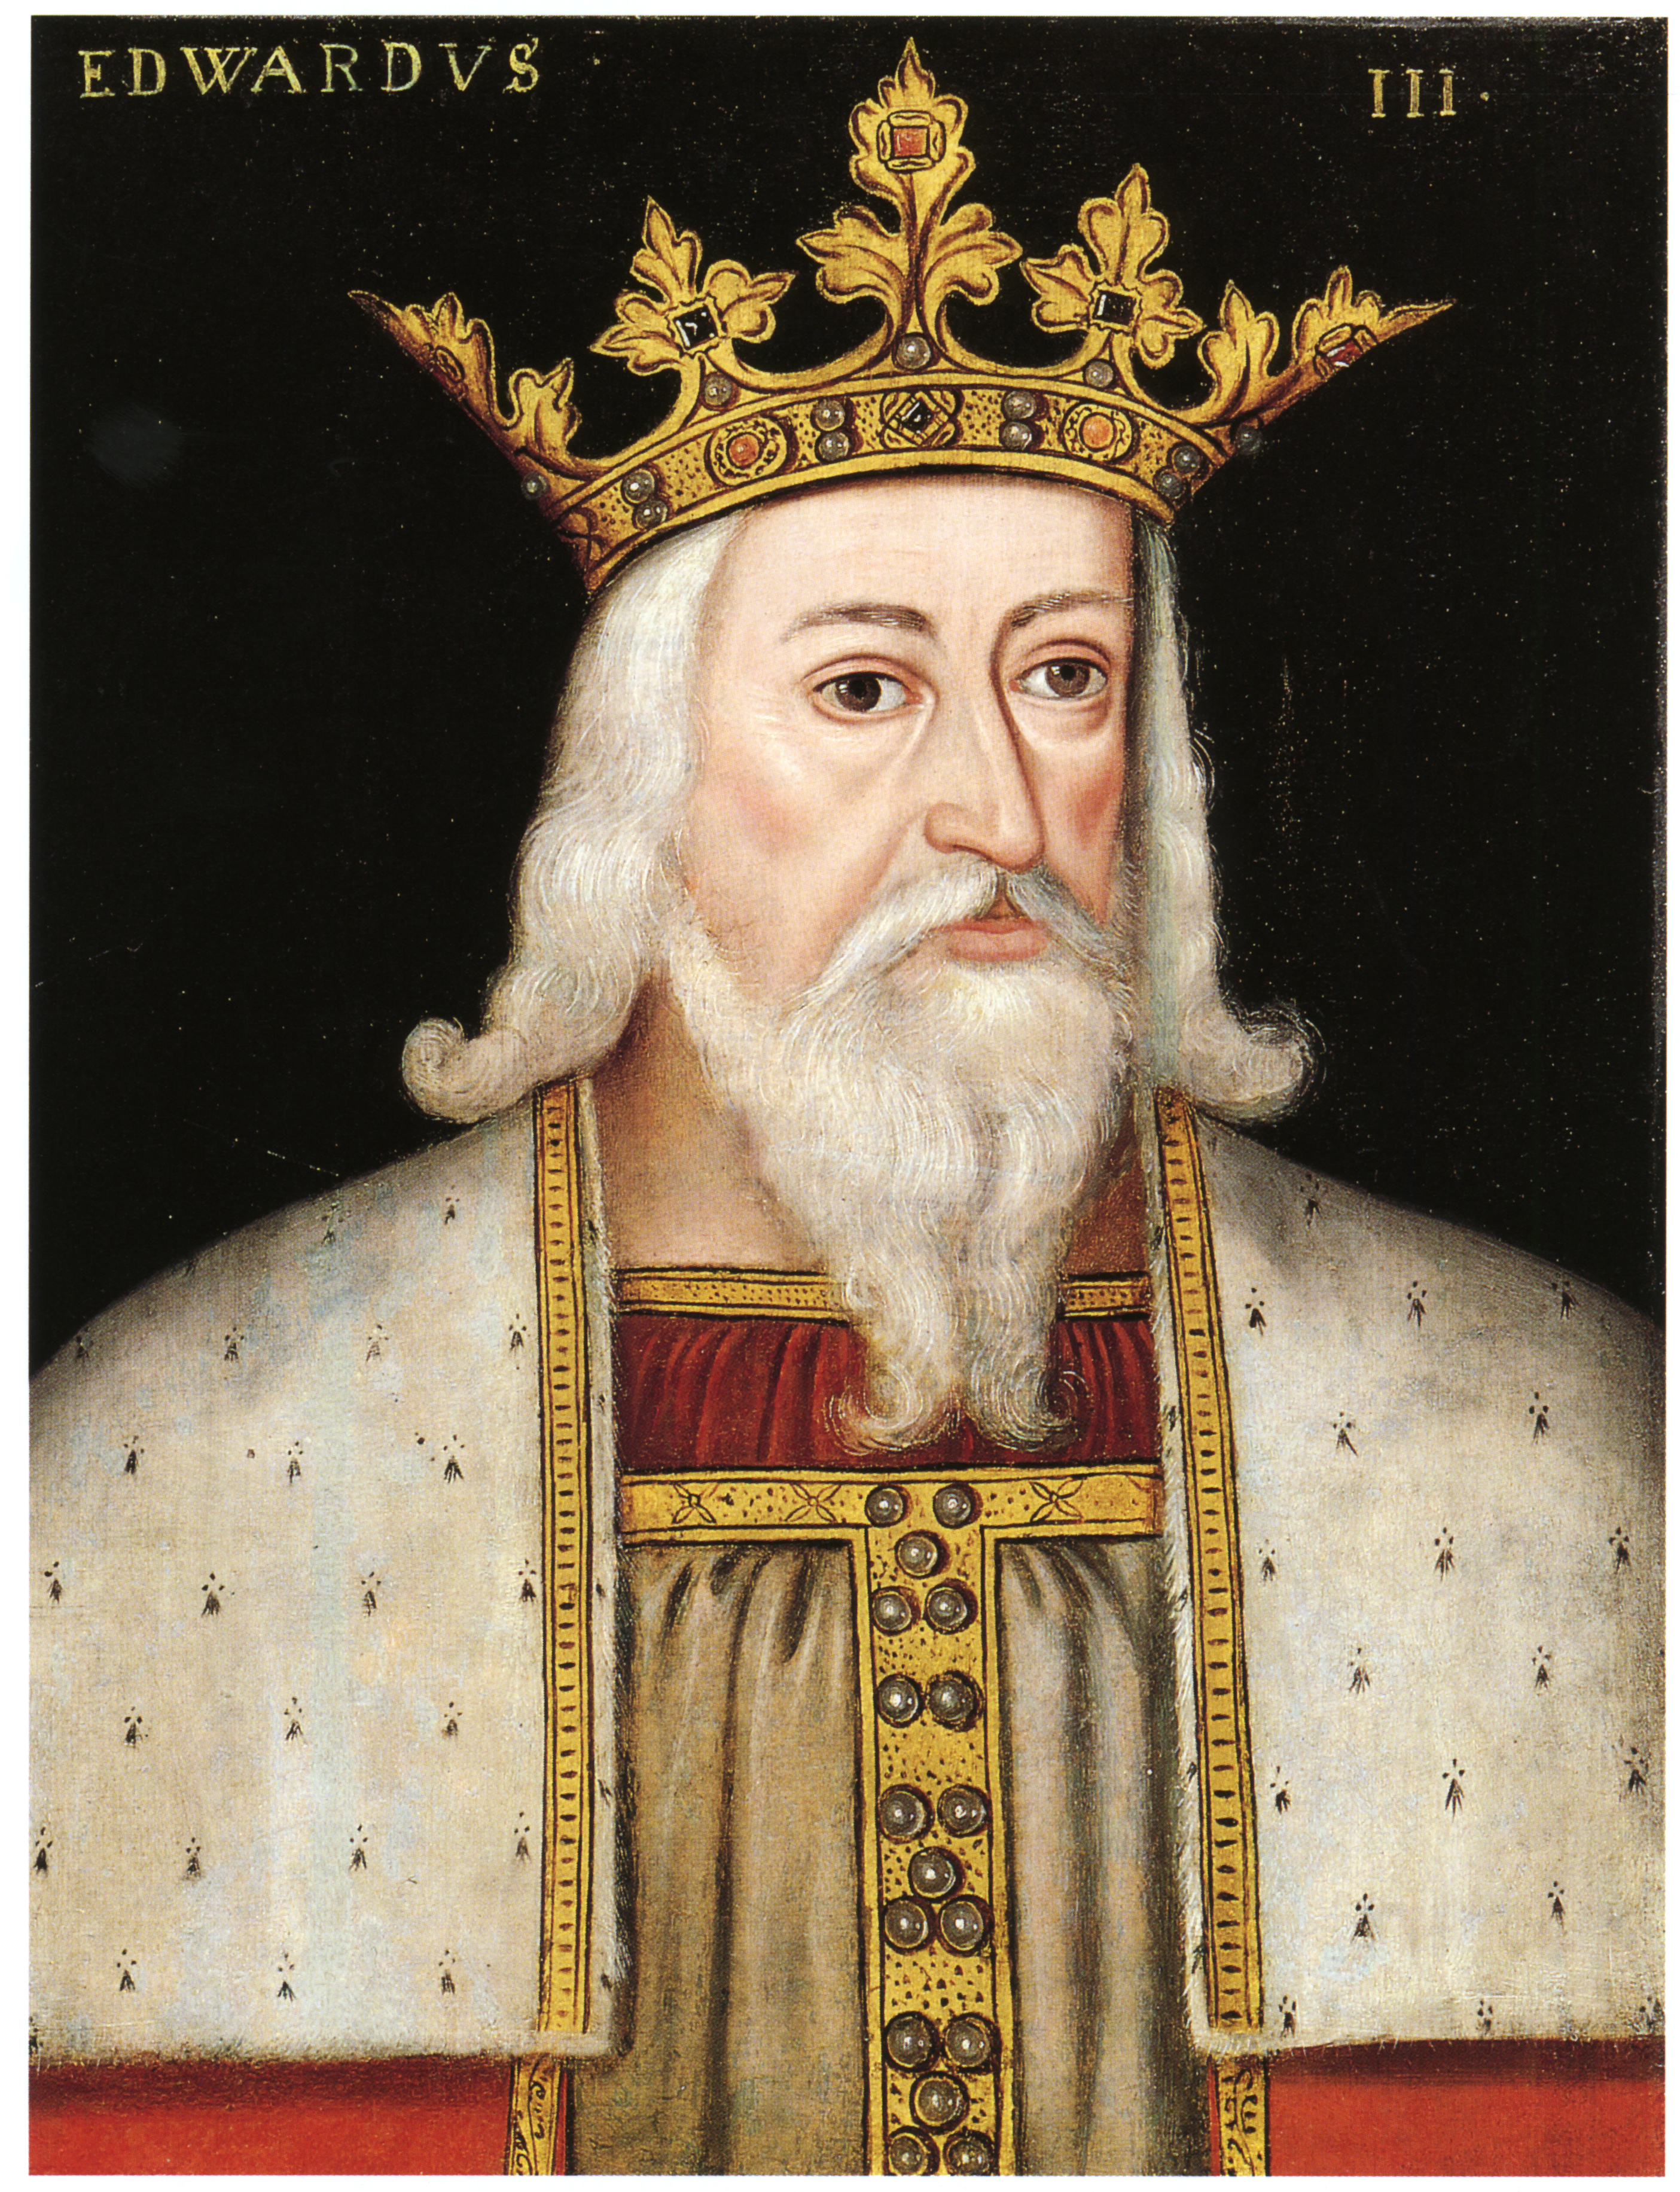 Painting of King Edward III of England wearing a large, elaborate gold crown.